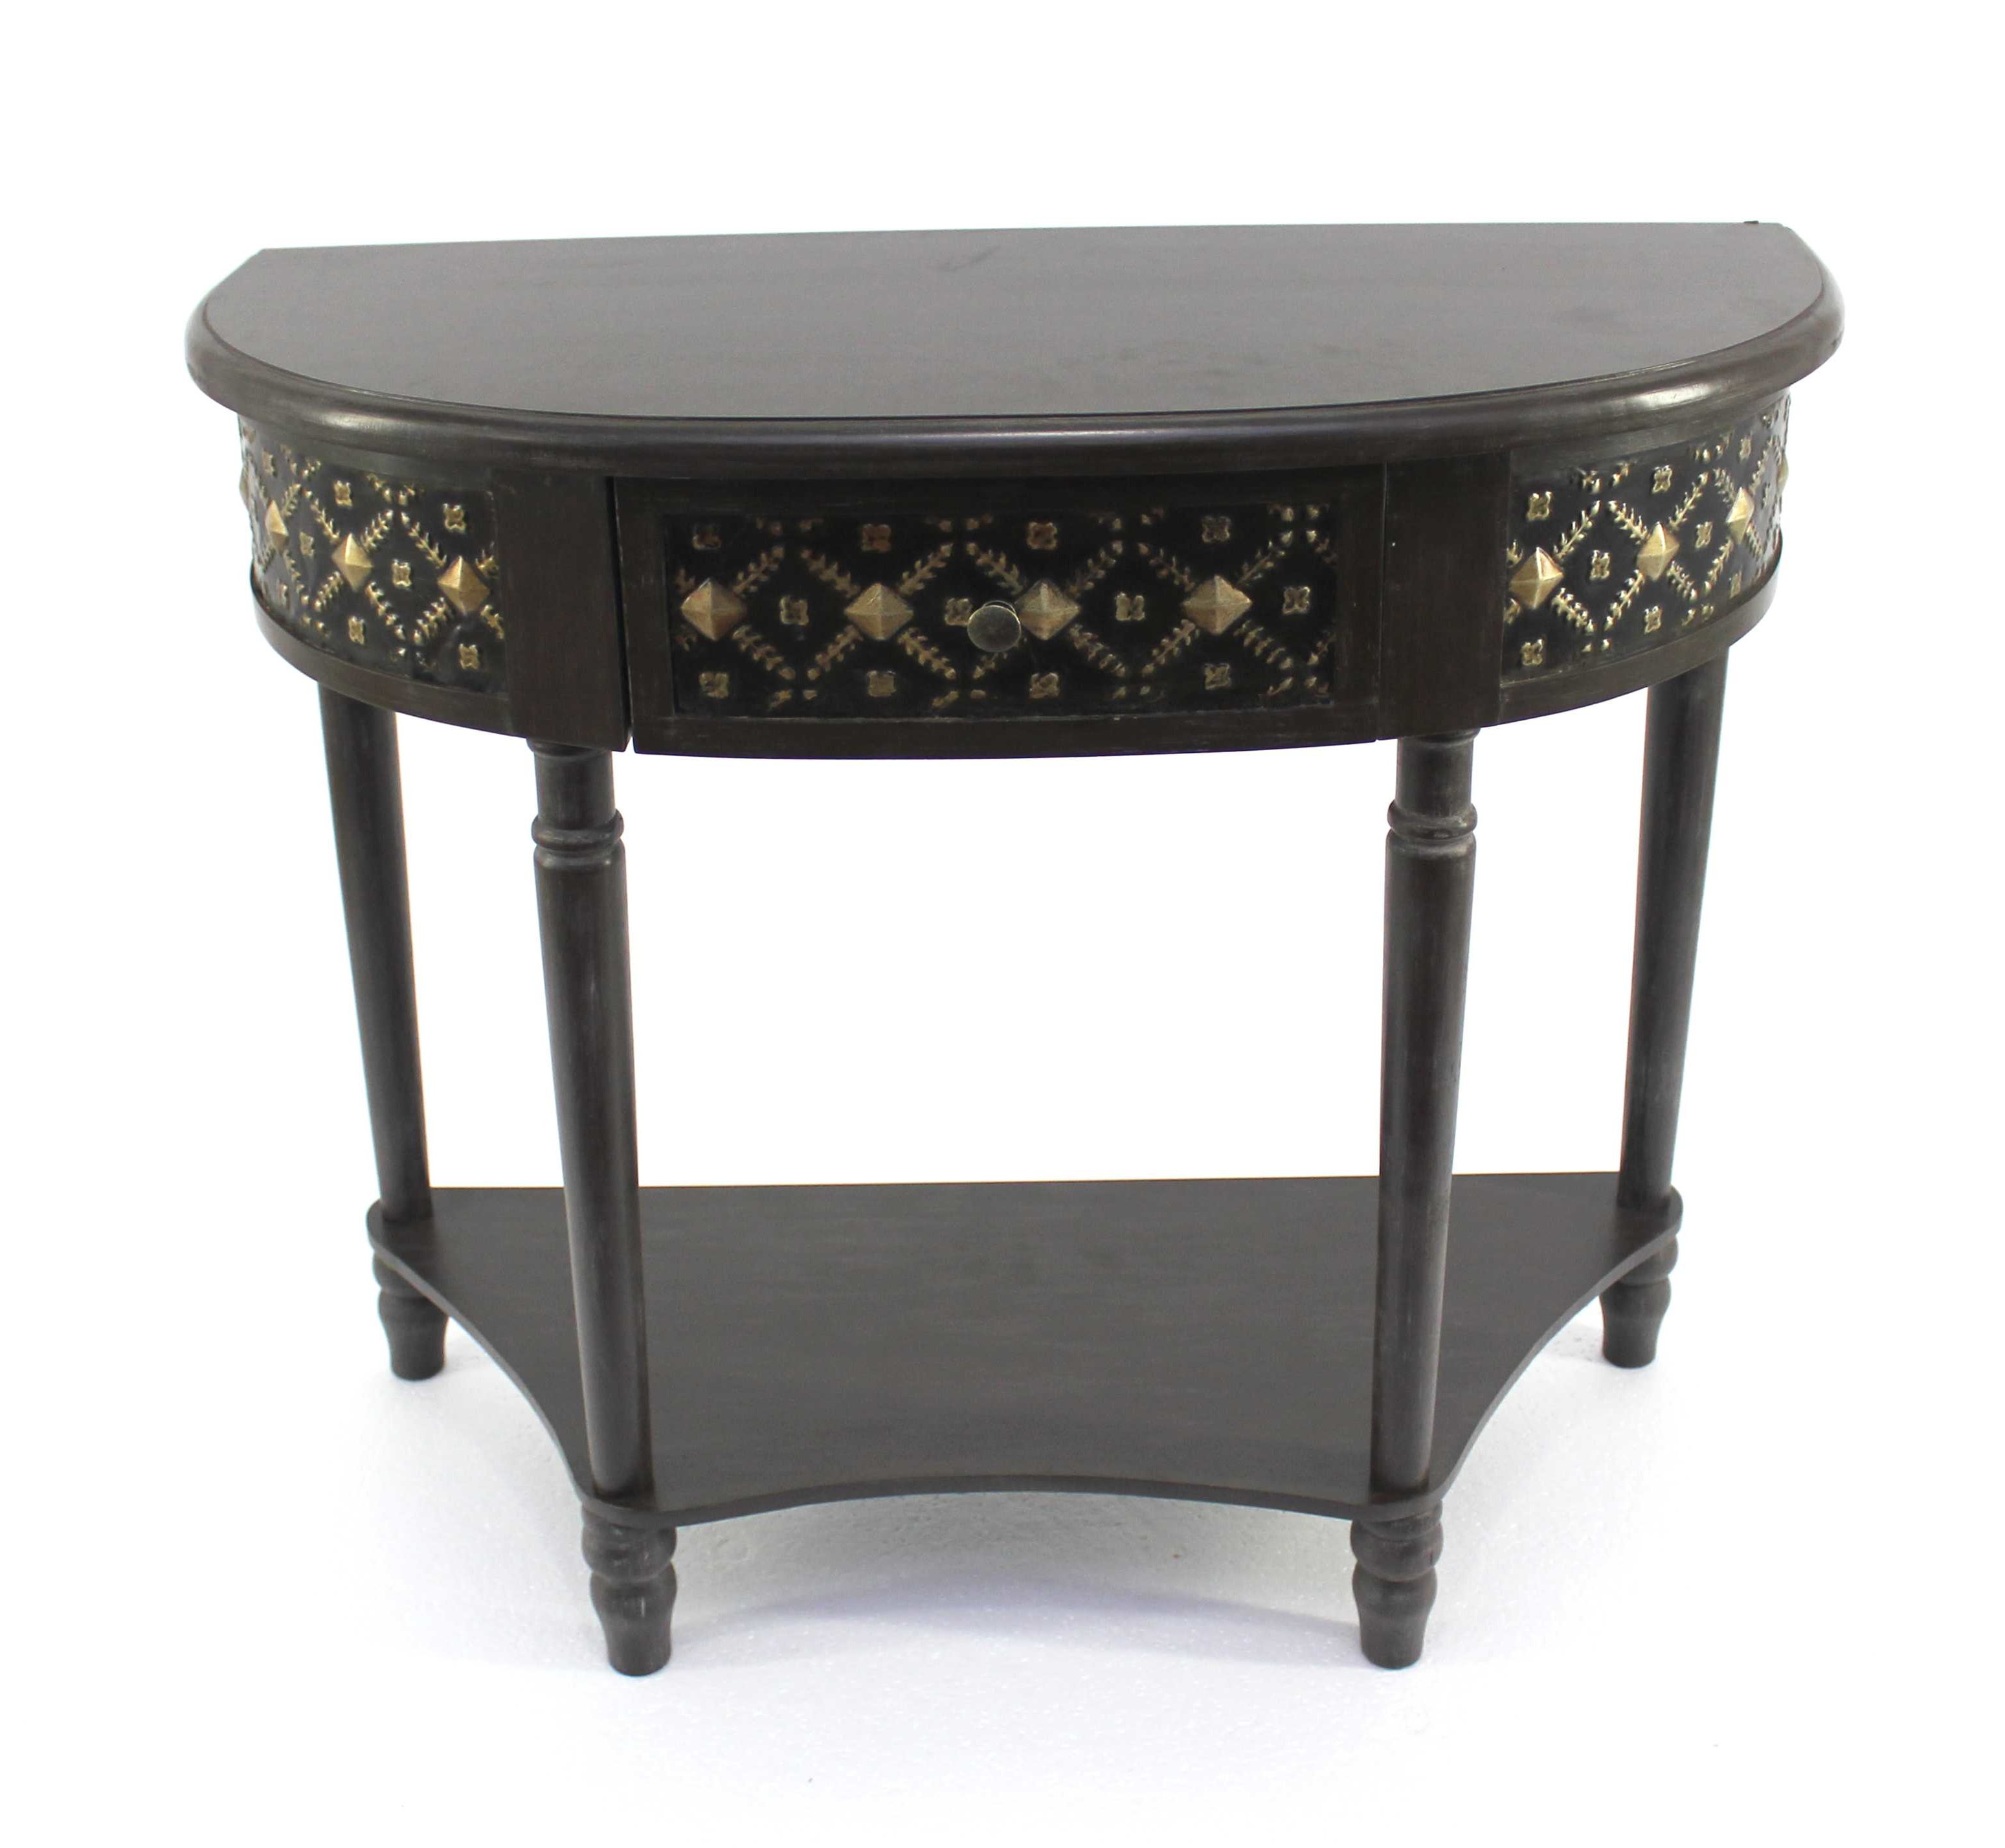 half moon accent table fuentes console bombay company marble top small round wicker outdoor chairs diy barndoor currey and lamps office desk shabby chic dresser modern furniture